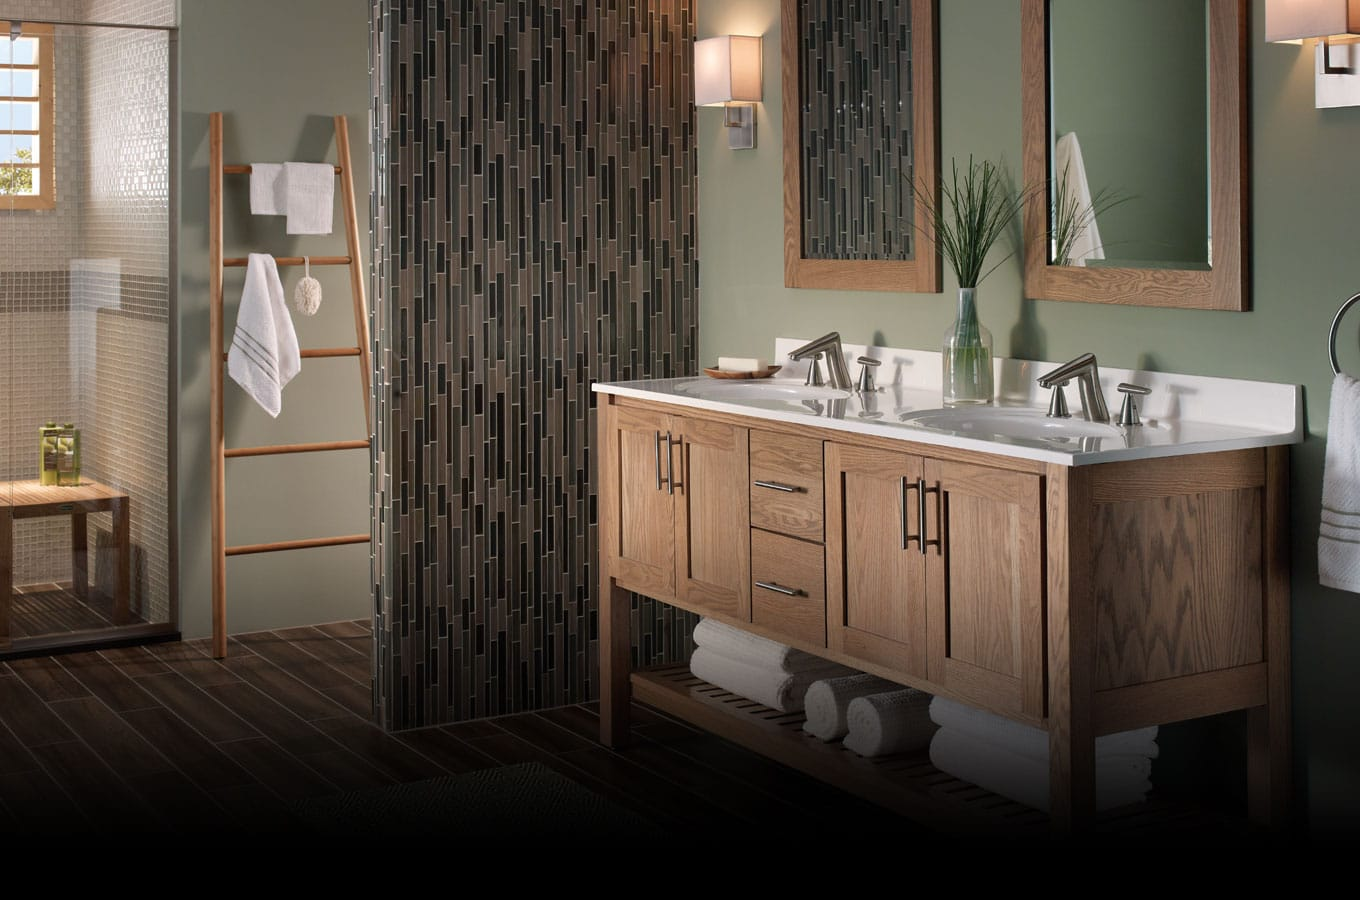 Custom Bathroom Vanities Denver kitchen cabinets, bath vanities, vanity tops, interior & exterior